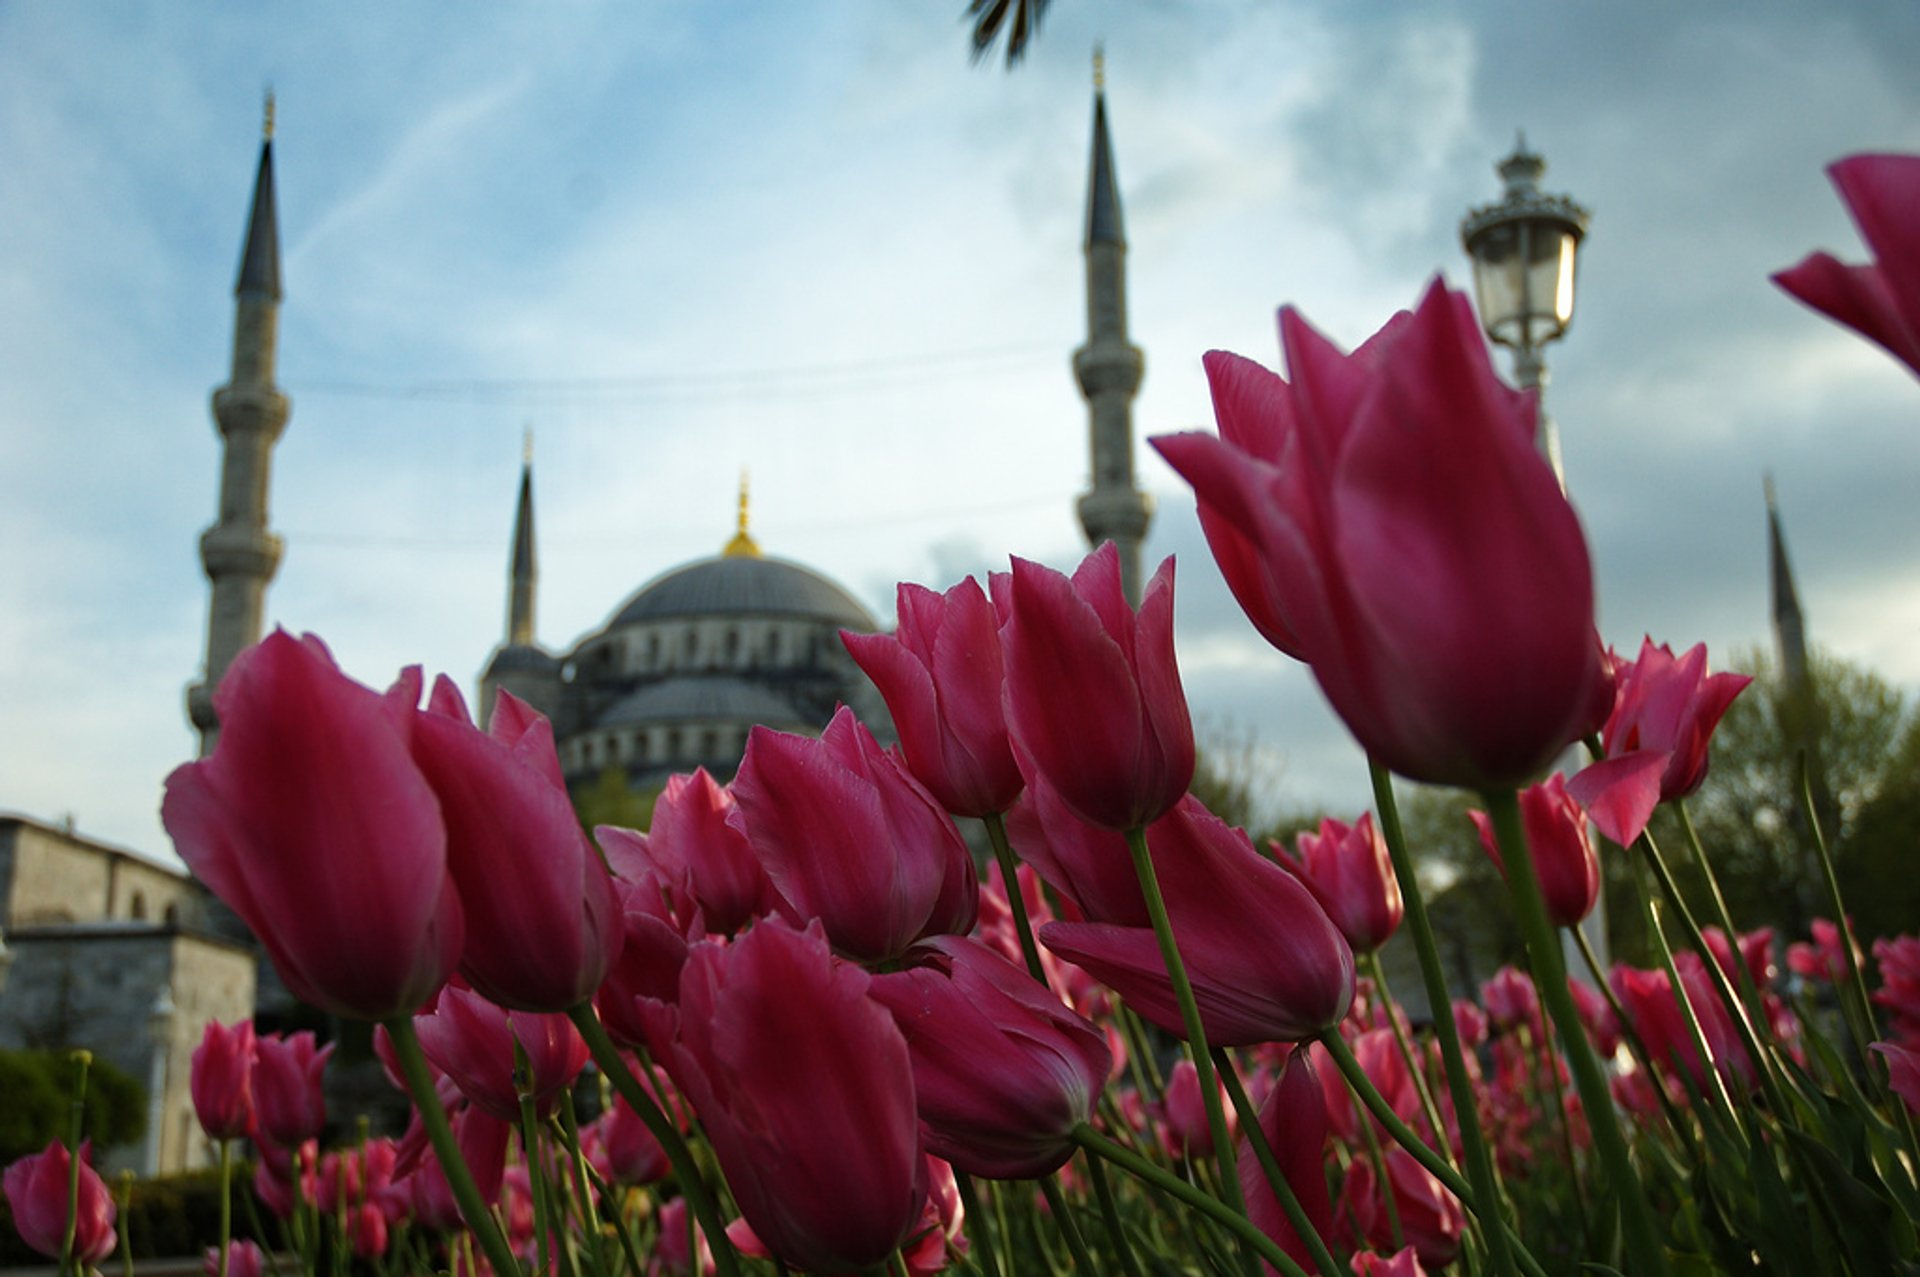 Tulips near Sultan Ahmet Mosque (Blue Mosque) 2019